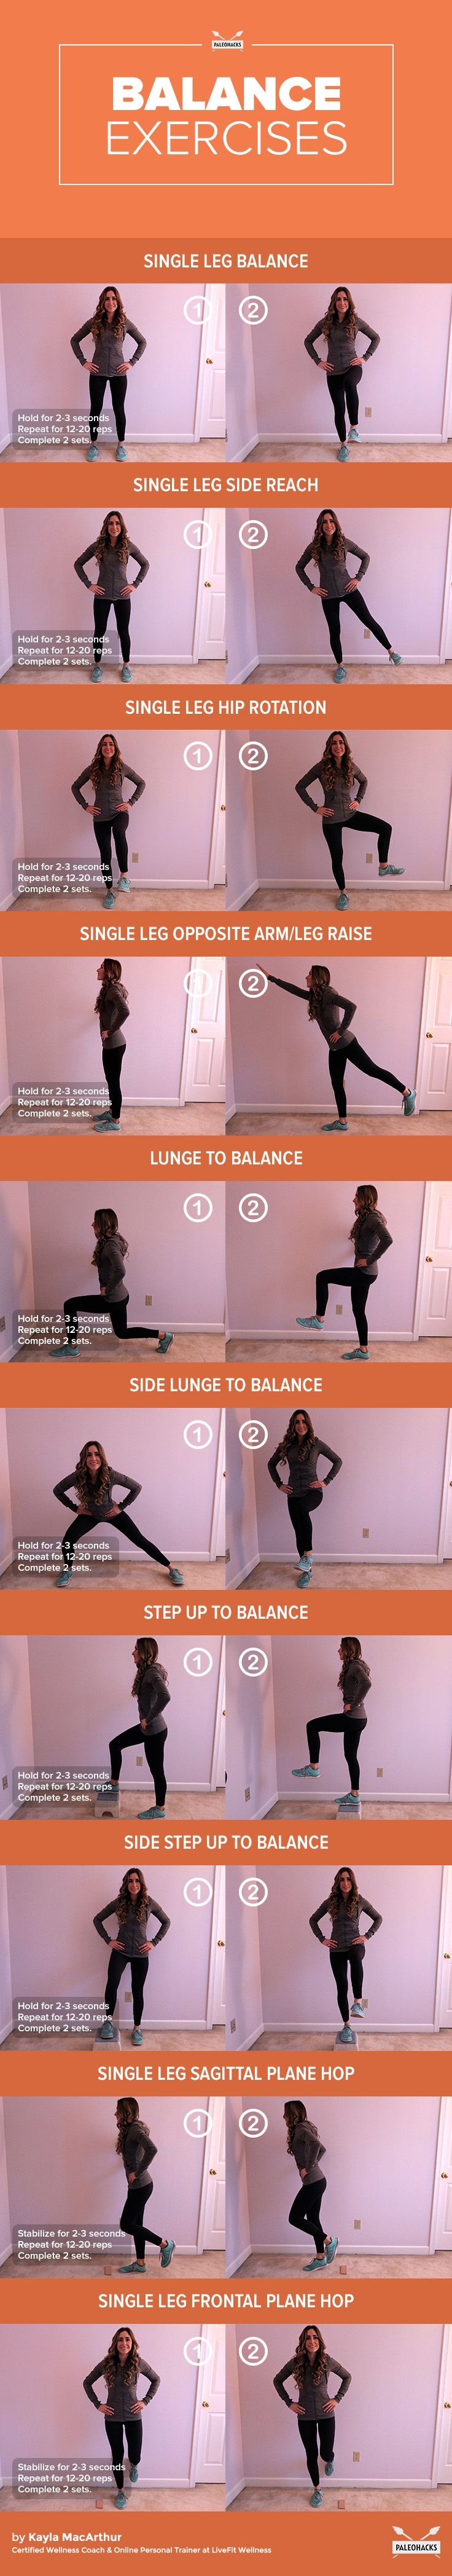 How to take all of your workouts to the next level by mastering your balance.